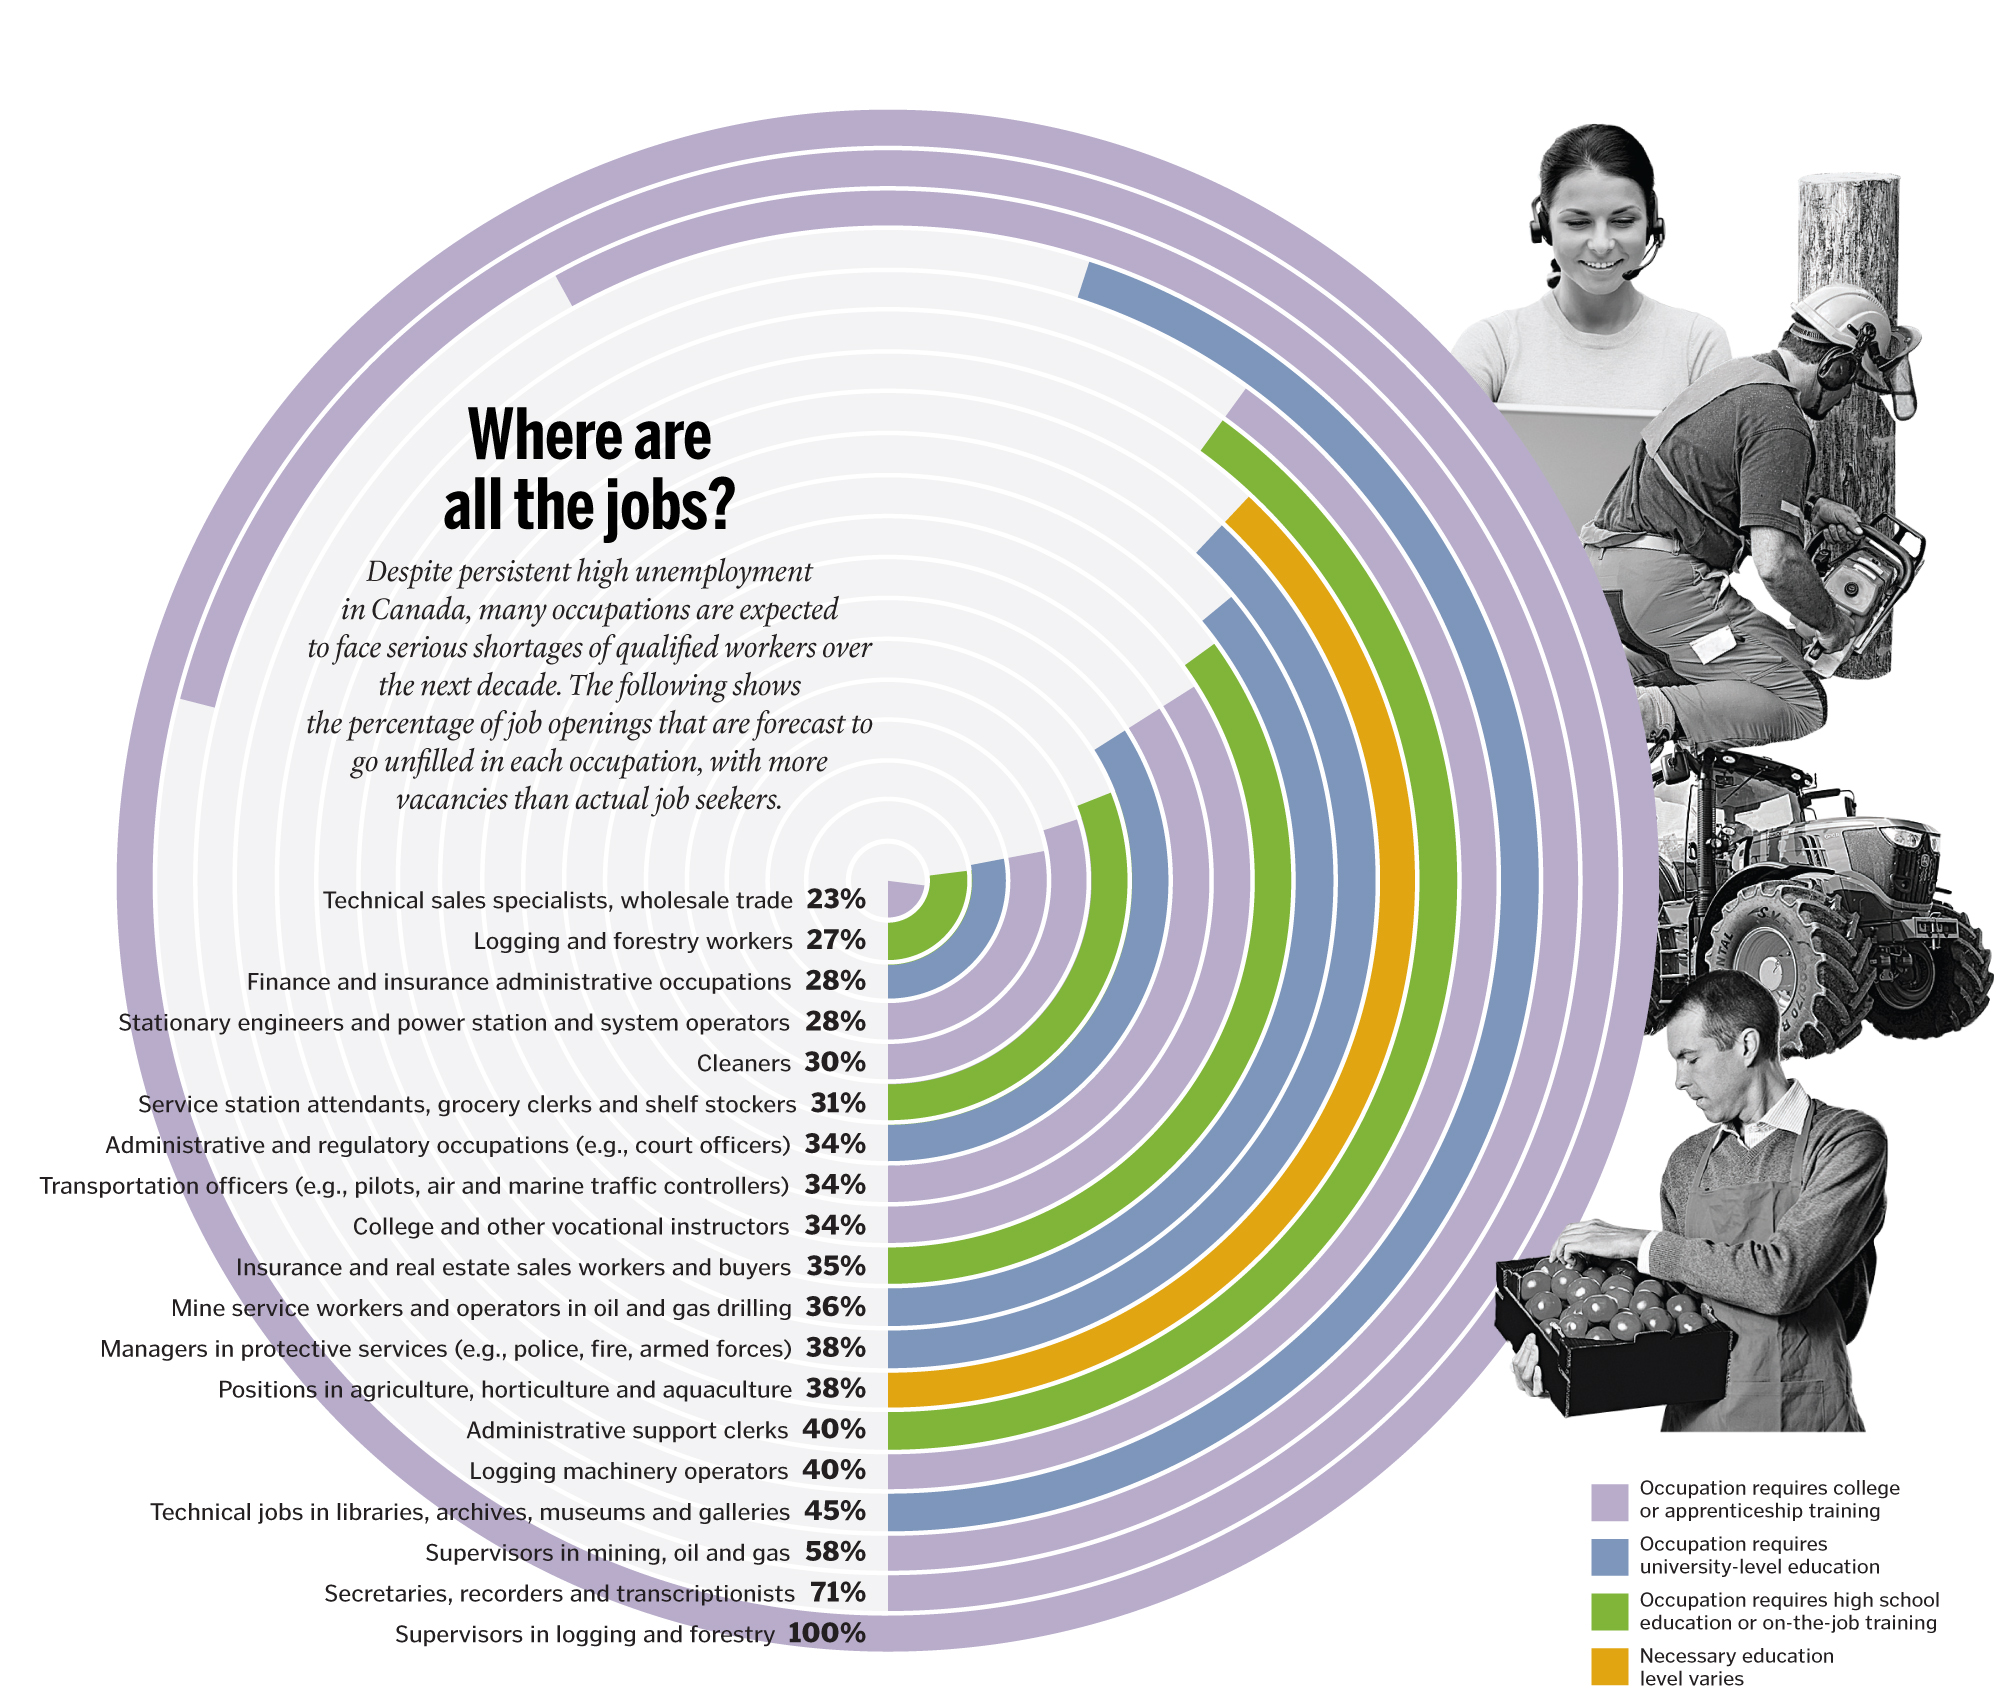 Top Professions In High Demand For Immigrants In Canada